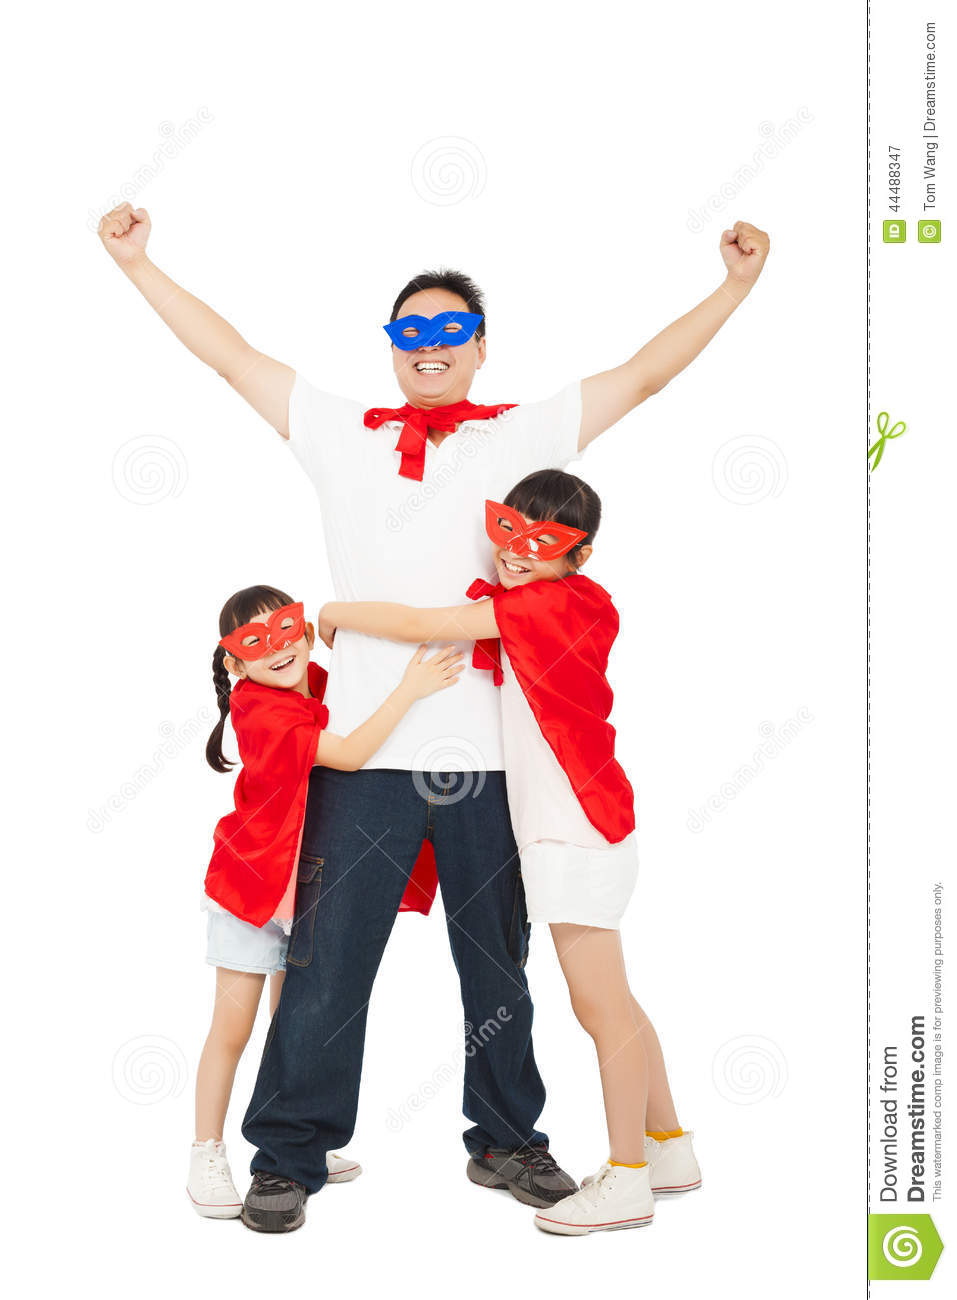 Superhero daughters hug father waist. isolated on white